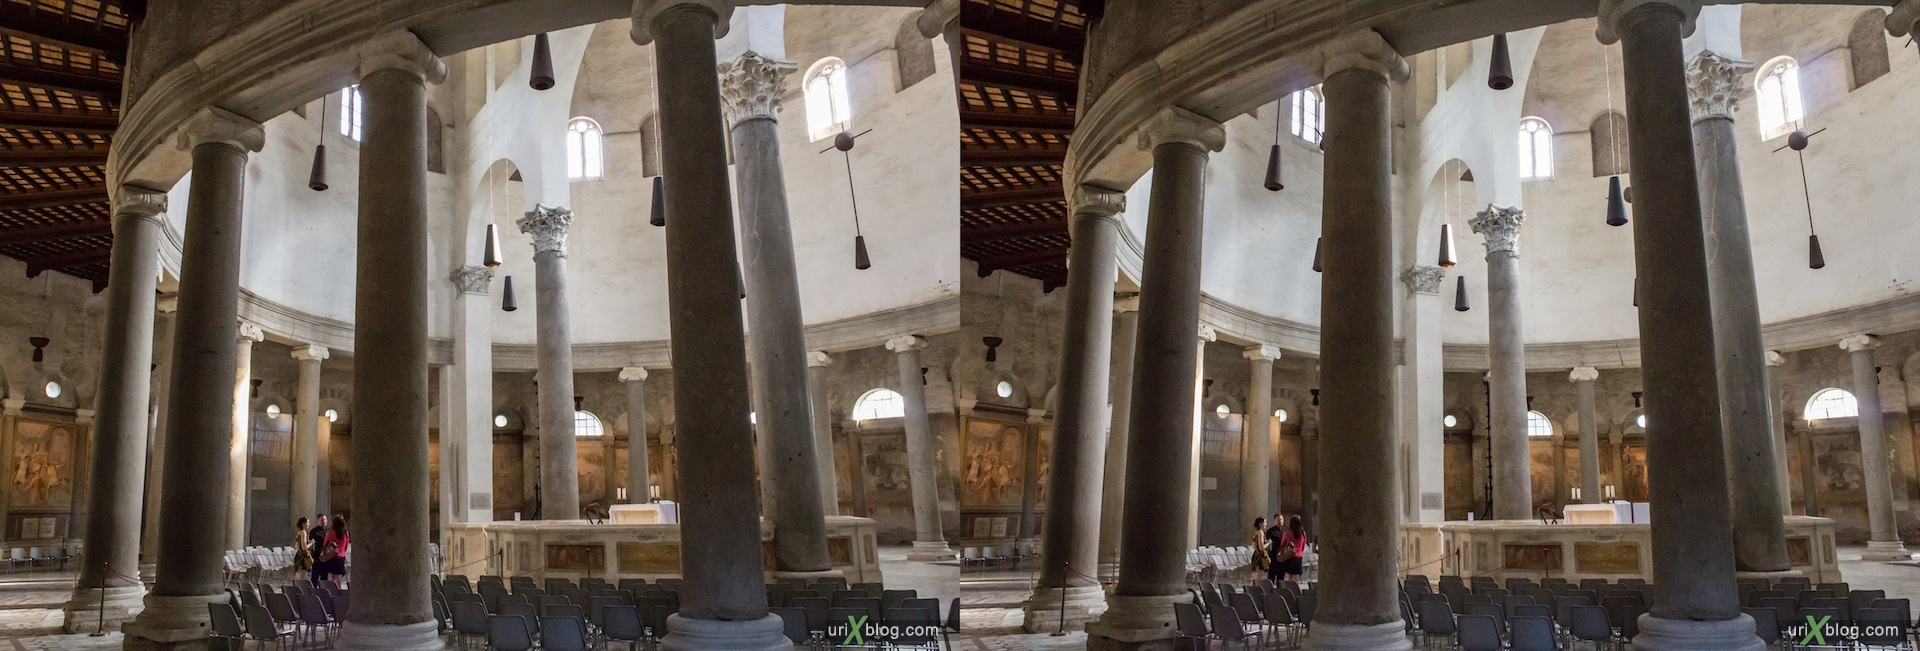 2012, church, Rome, Italy, cathedral, monastery, Christianity, Catholicism, 3D, stereo pair, cross-eyed, crossview, cross view stereo pair